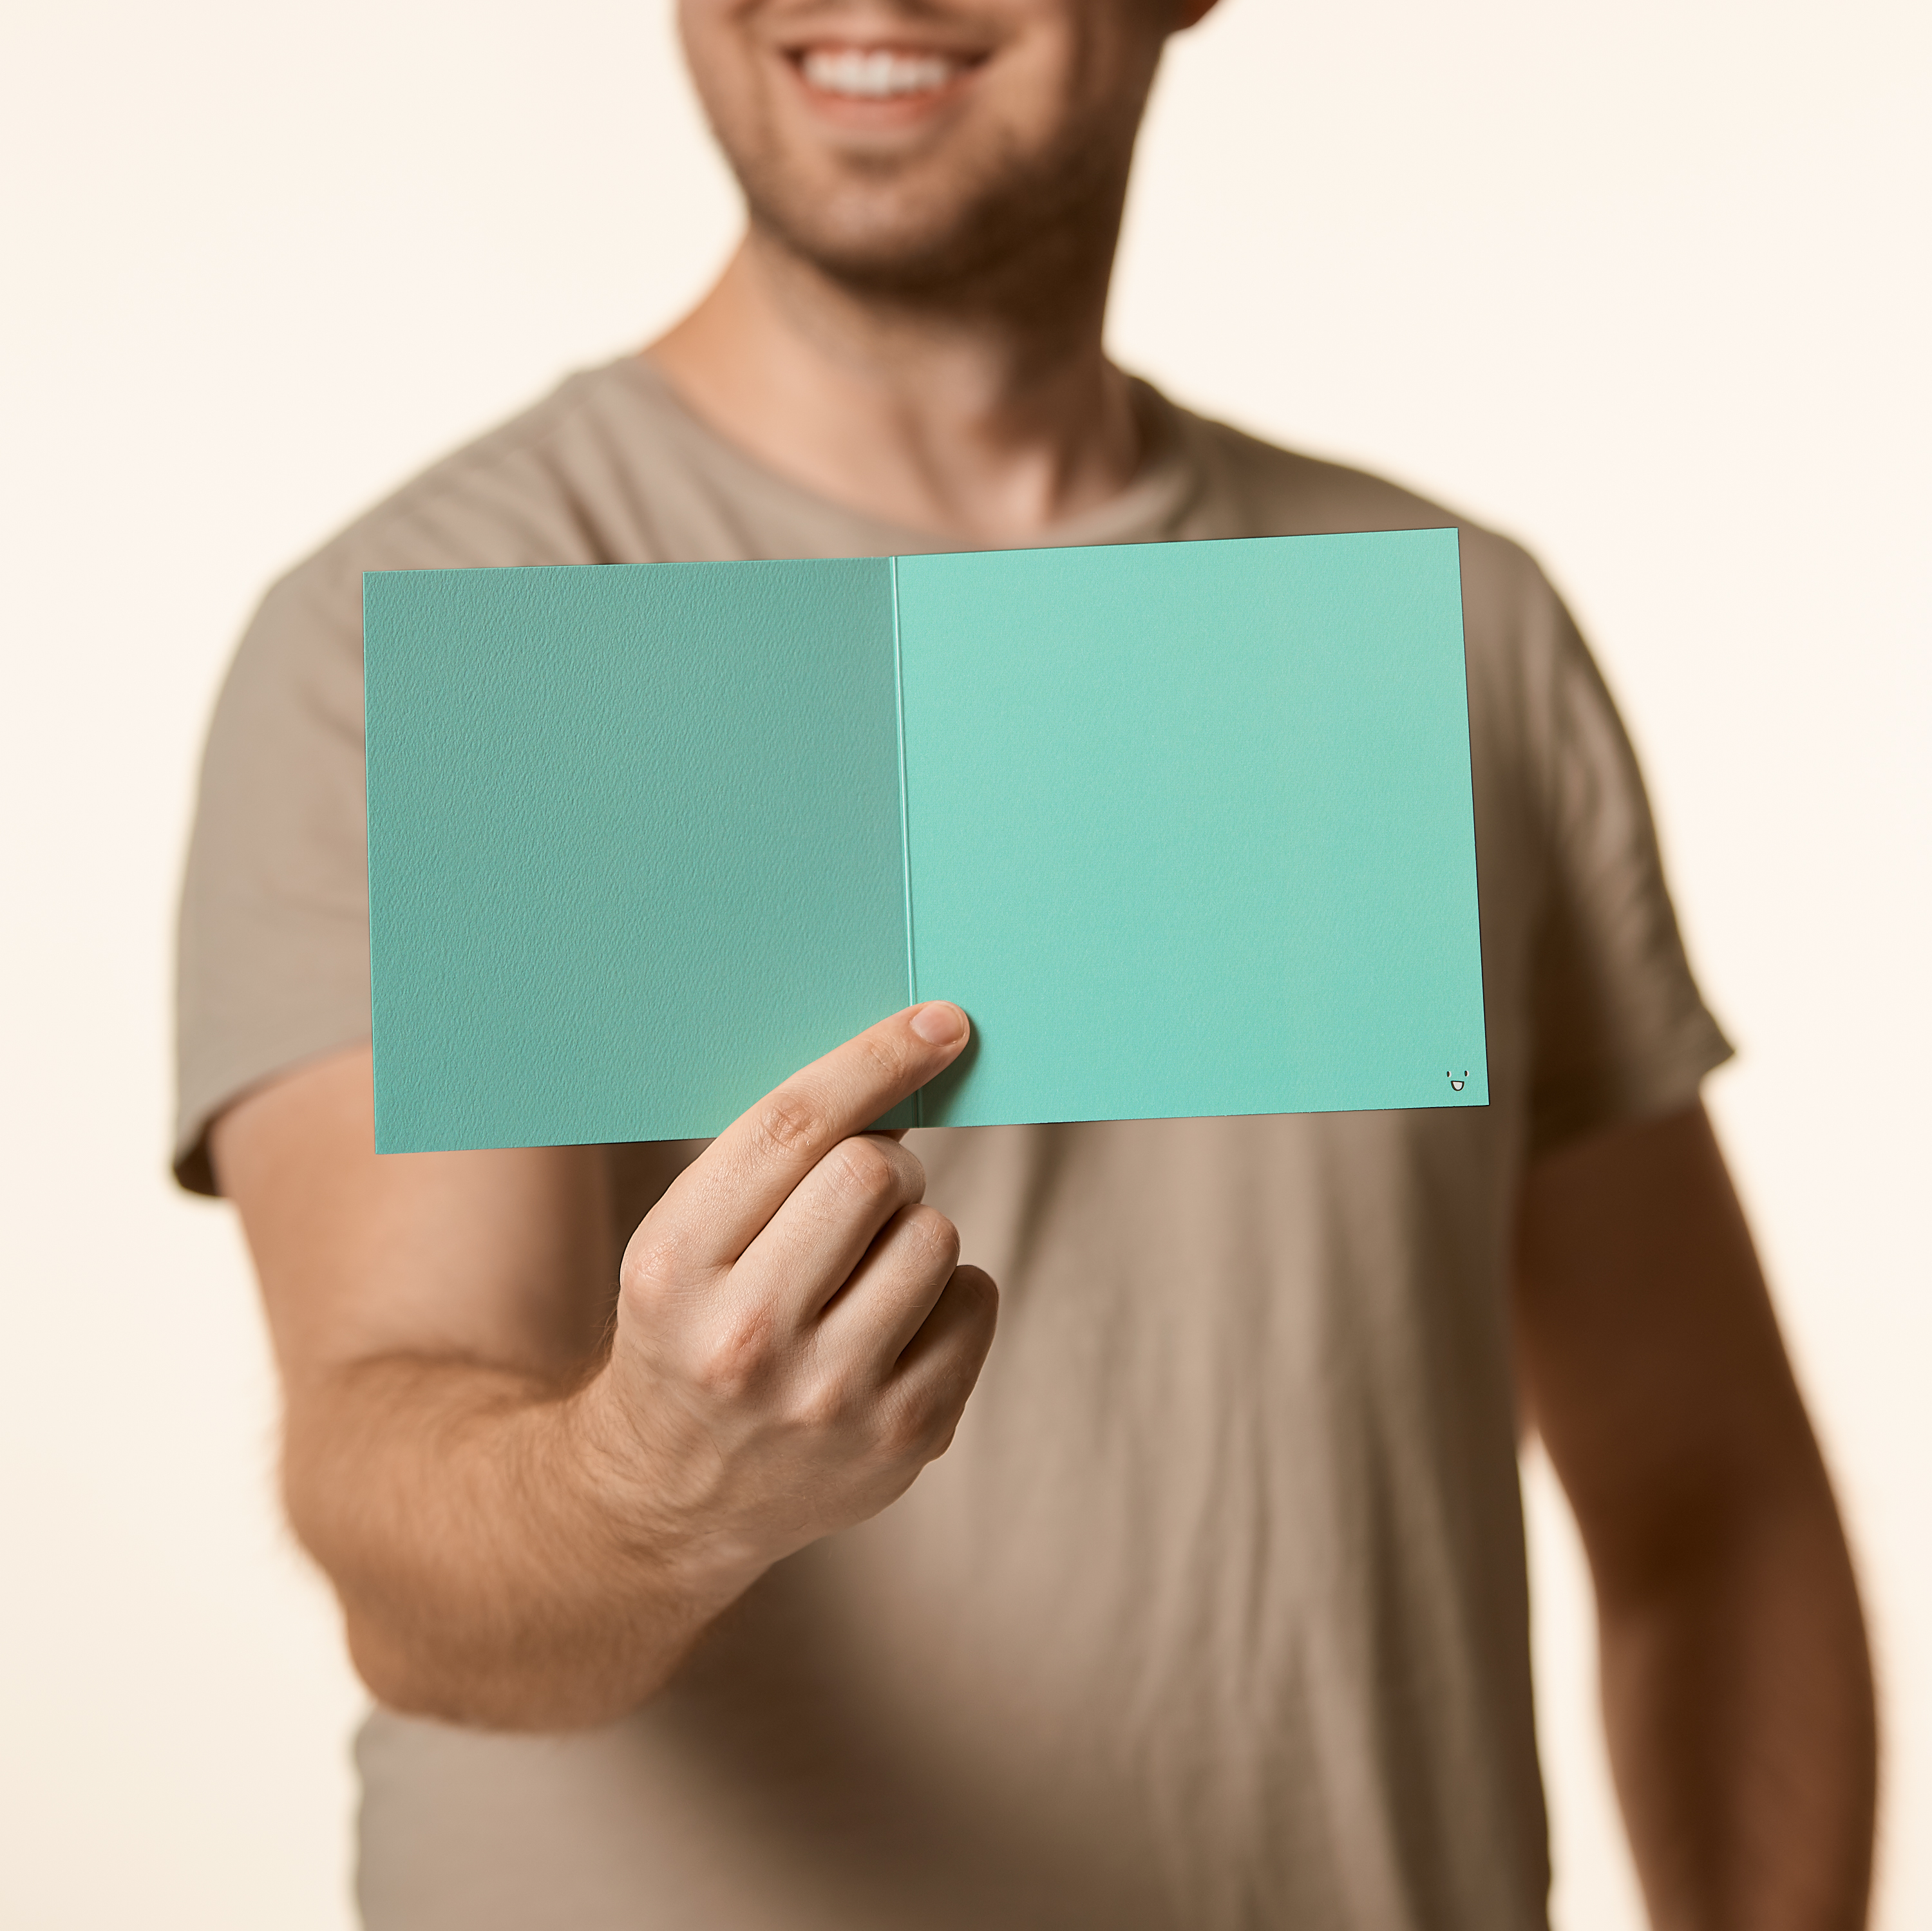 Thumbs Up Blank Greeting Card - Friendship, Thinking of You, Congratulations image